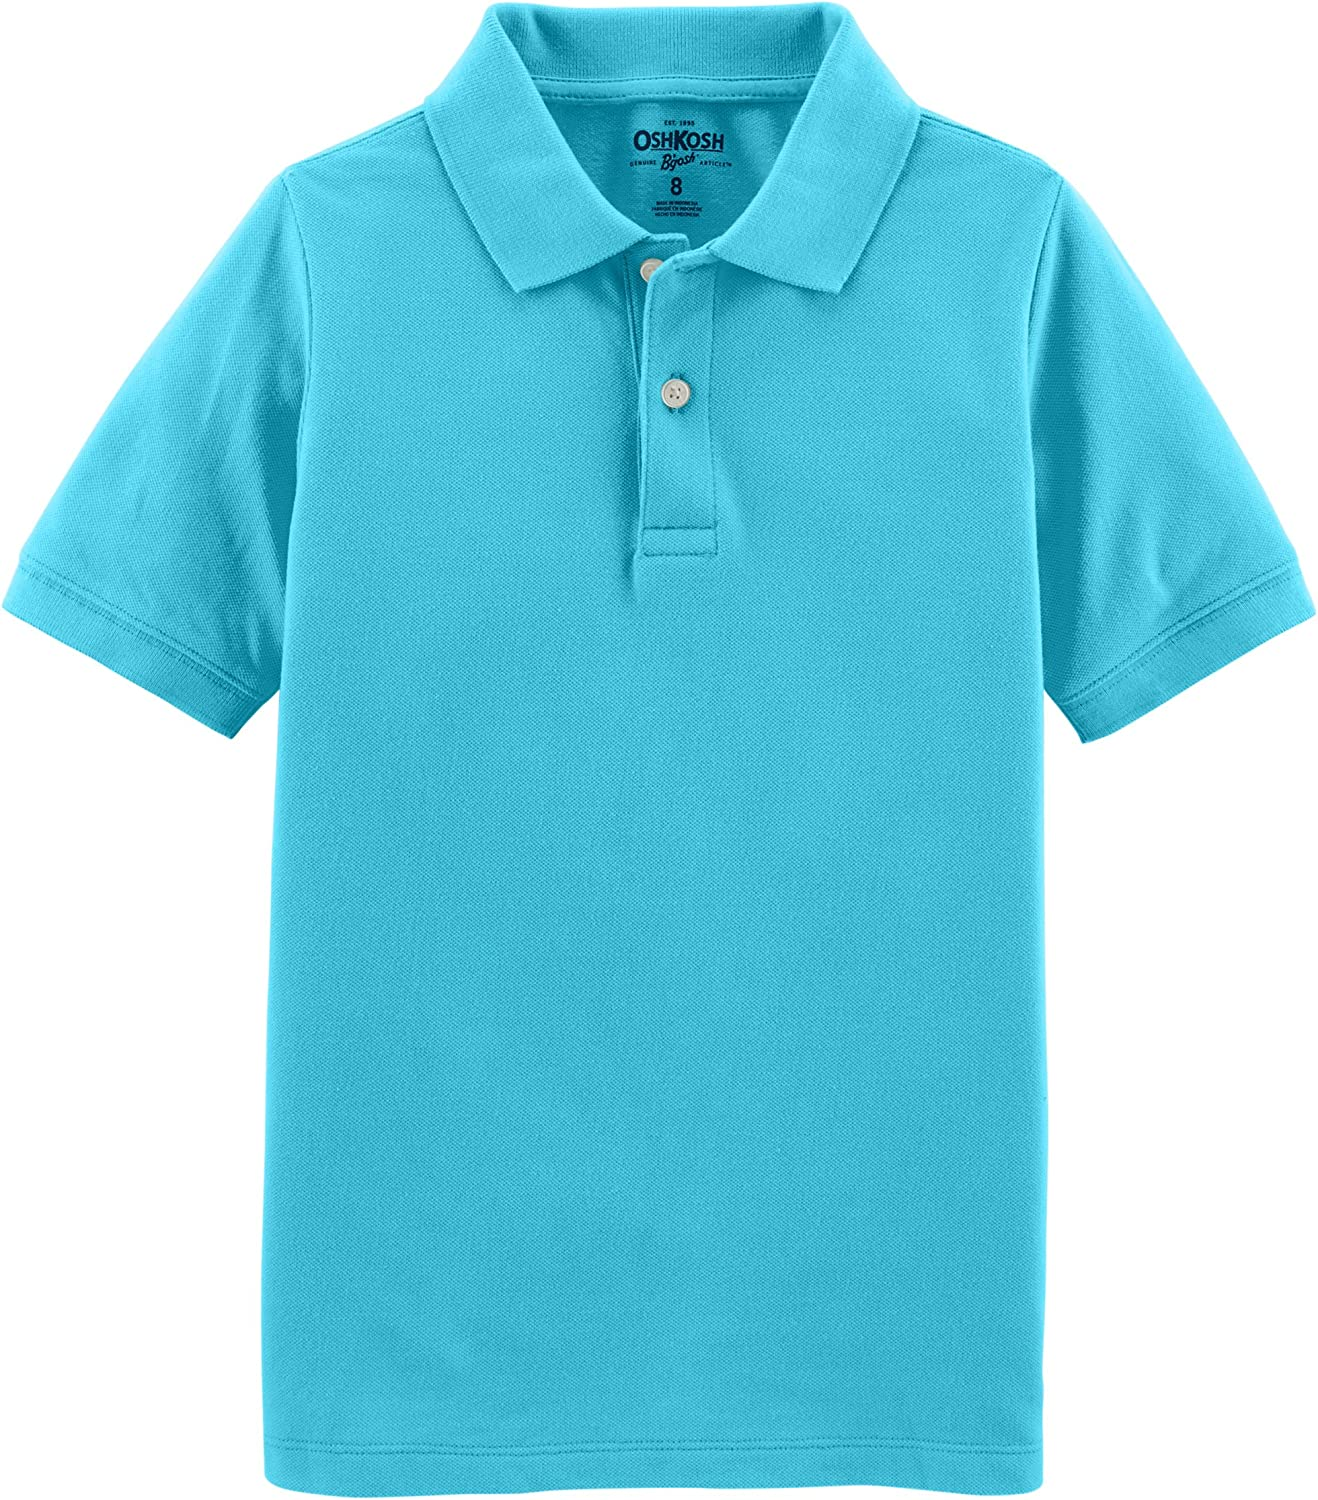 OshKosh B'Gosh Boys' Kids Short Sleeve Uniform Polo